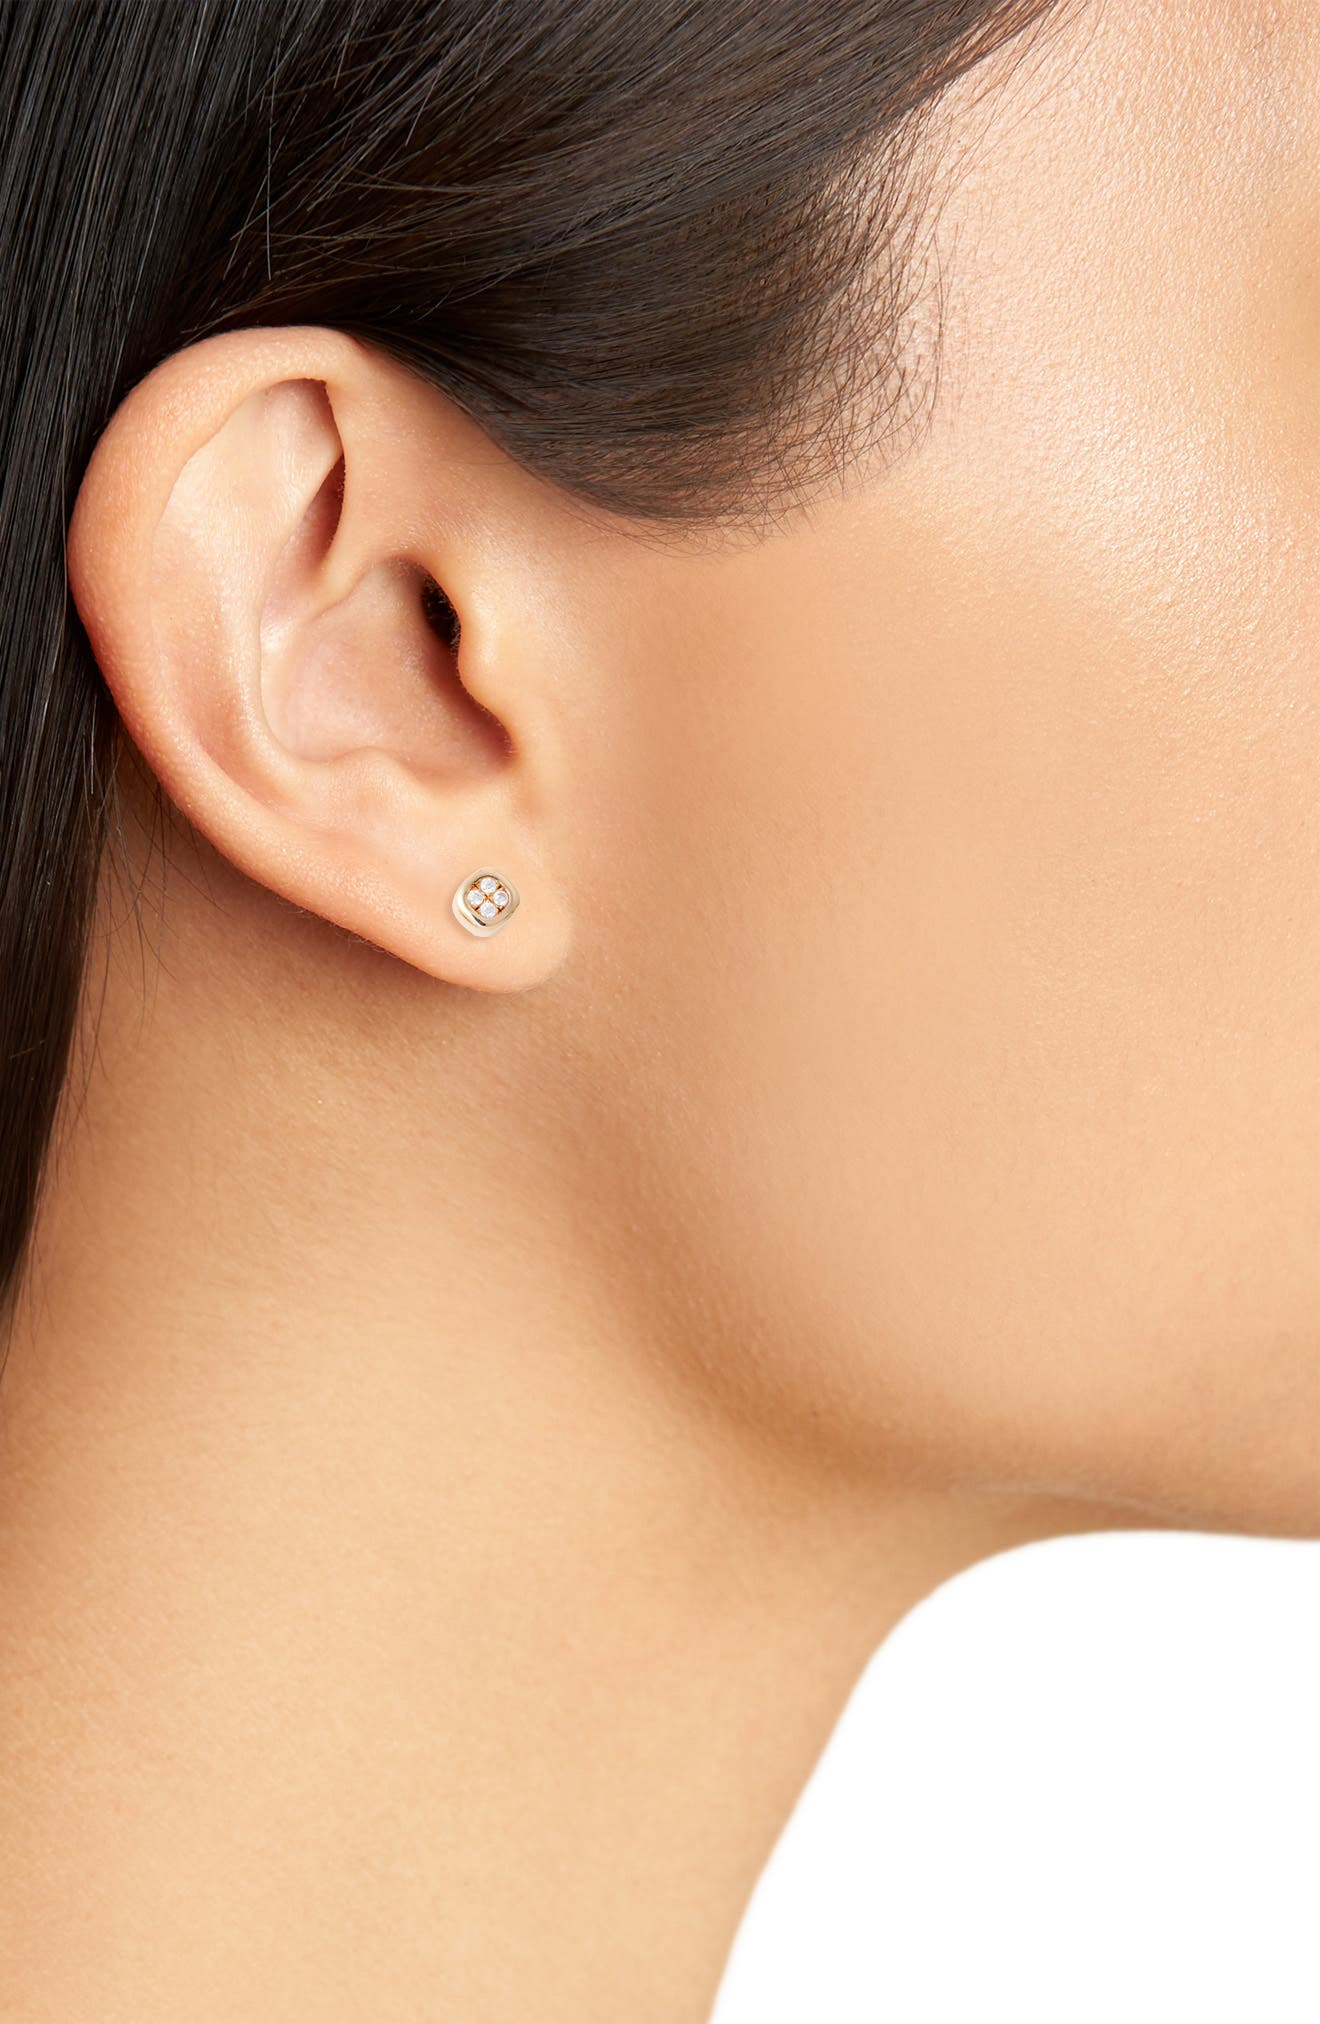 Foursquare Simulated Diamond Earrings,                             Alternate thumbnail 2, color,                             Silver/ Gold/ Clear